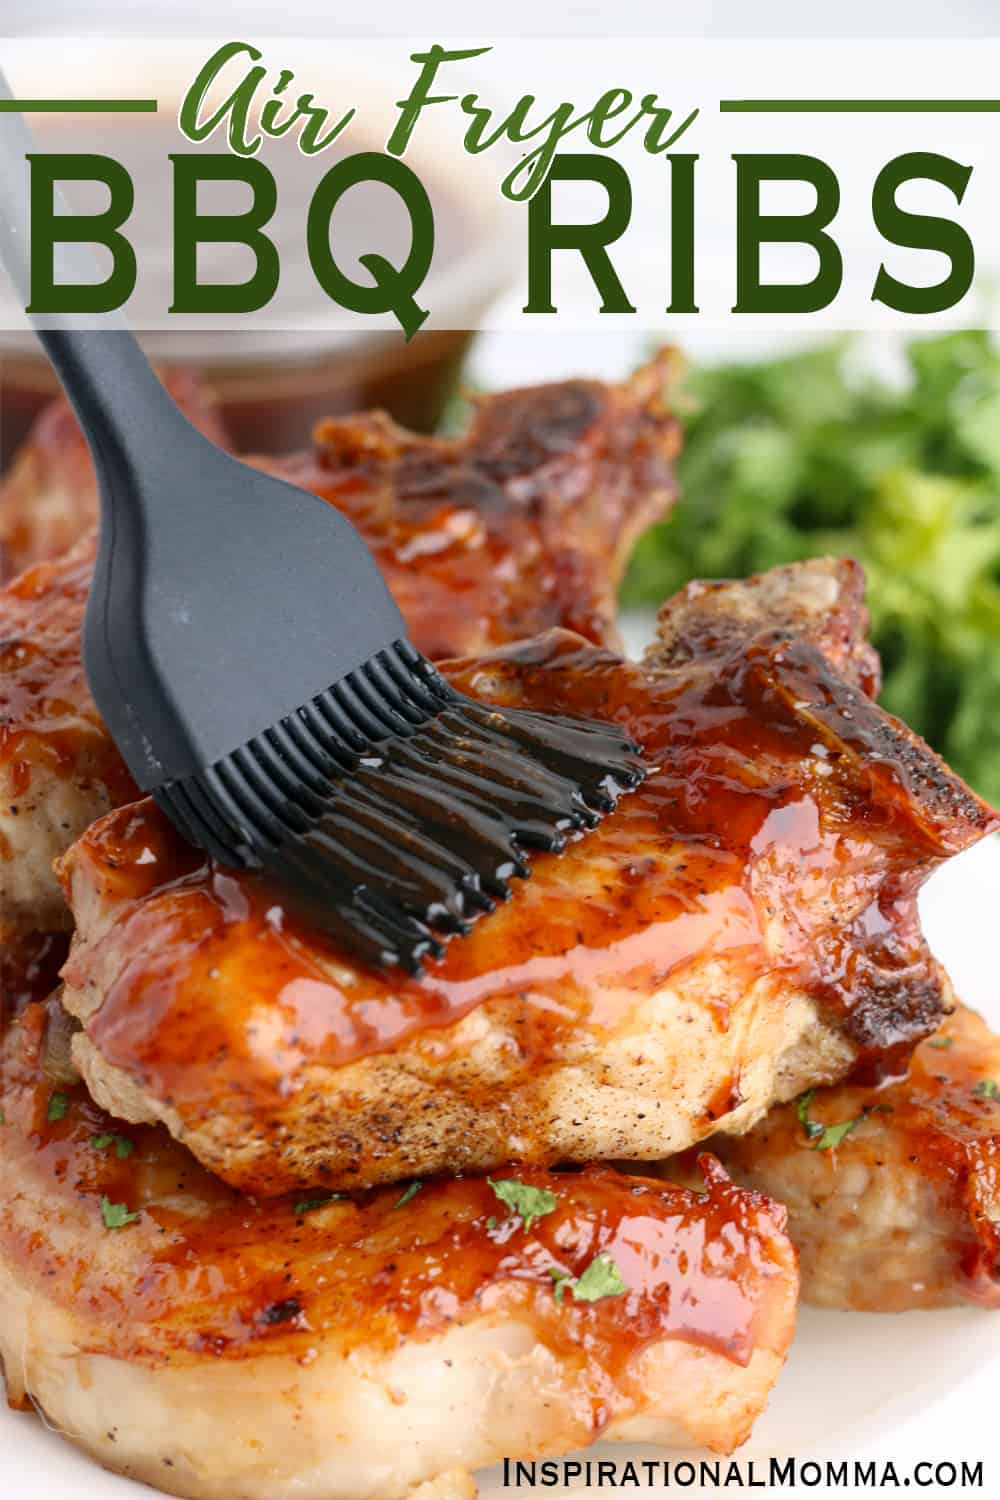 Air Fryer BBQ Ribs are tender, juicy, and so flavorful.  Made in under 20 minutes, they are a delicious weeknight meal! #inspirationalmomma #airfryerbbqribs #airfryerribs #airfryerribsrecipe #bbqribs #airfryerdinners #airfryerrecipes #bbqribsrecipe